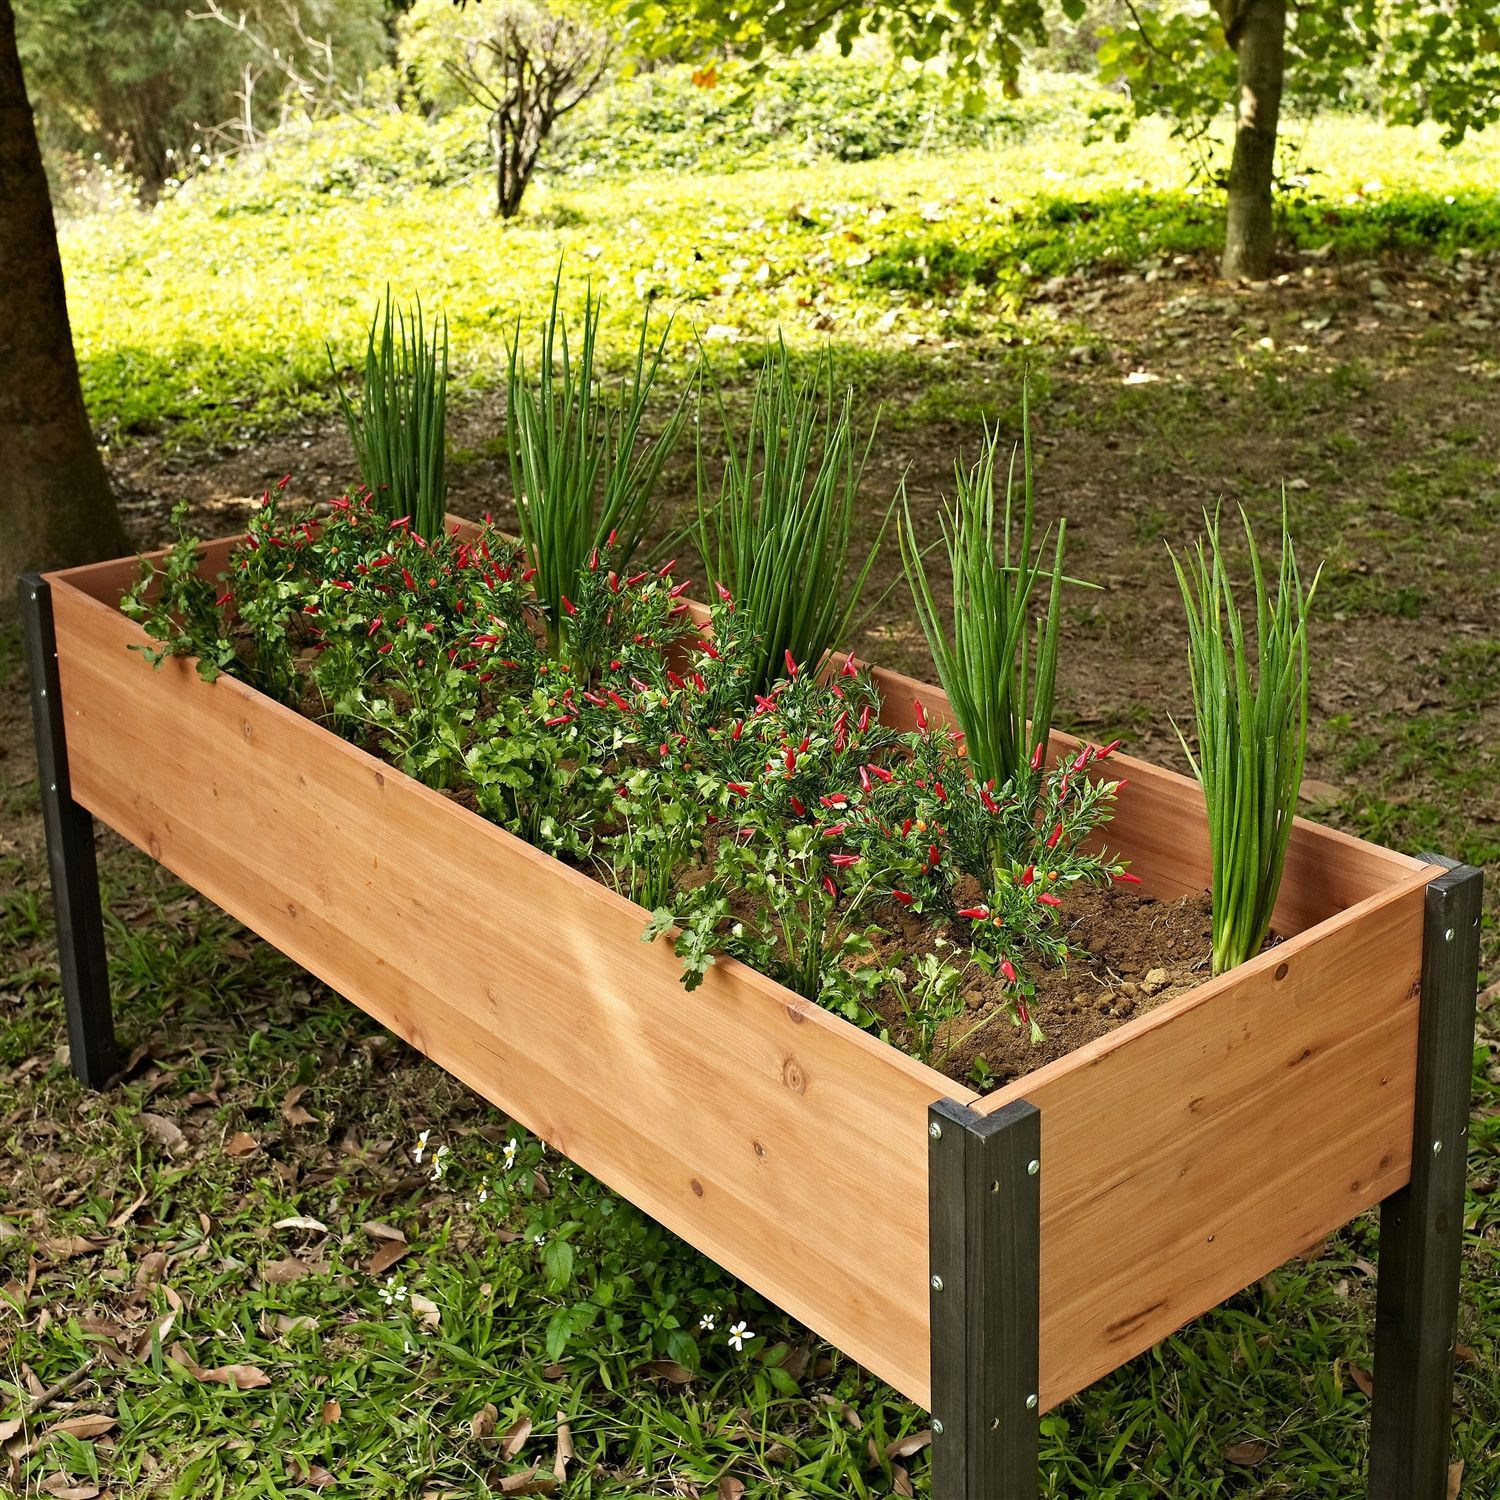 Diy Raised Garden Bed On Legs Elevated Outdoor Raised Garden Bed Planter Box 70 X 24 X